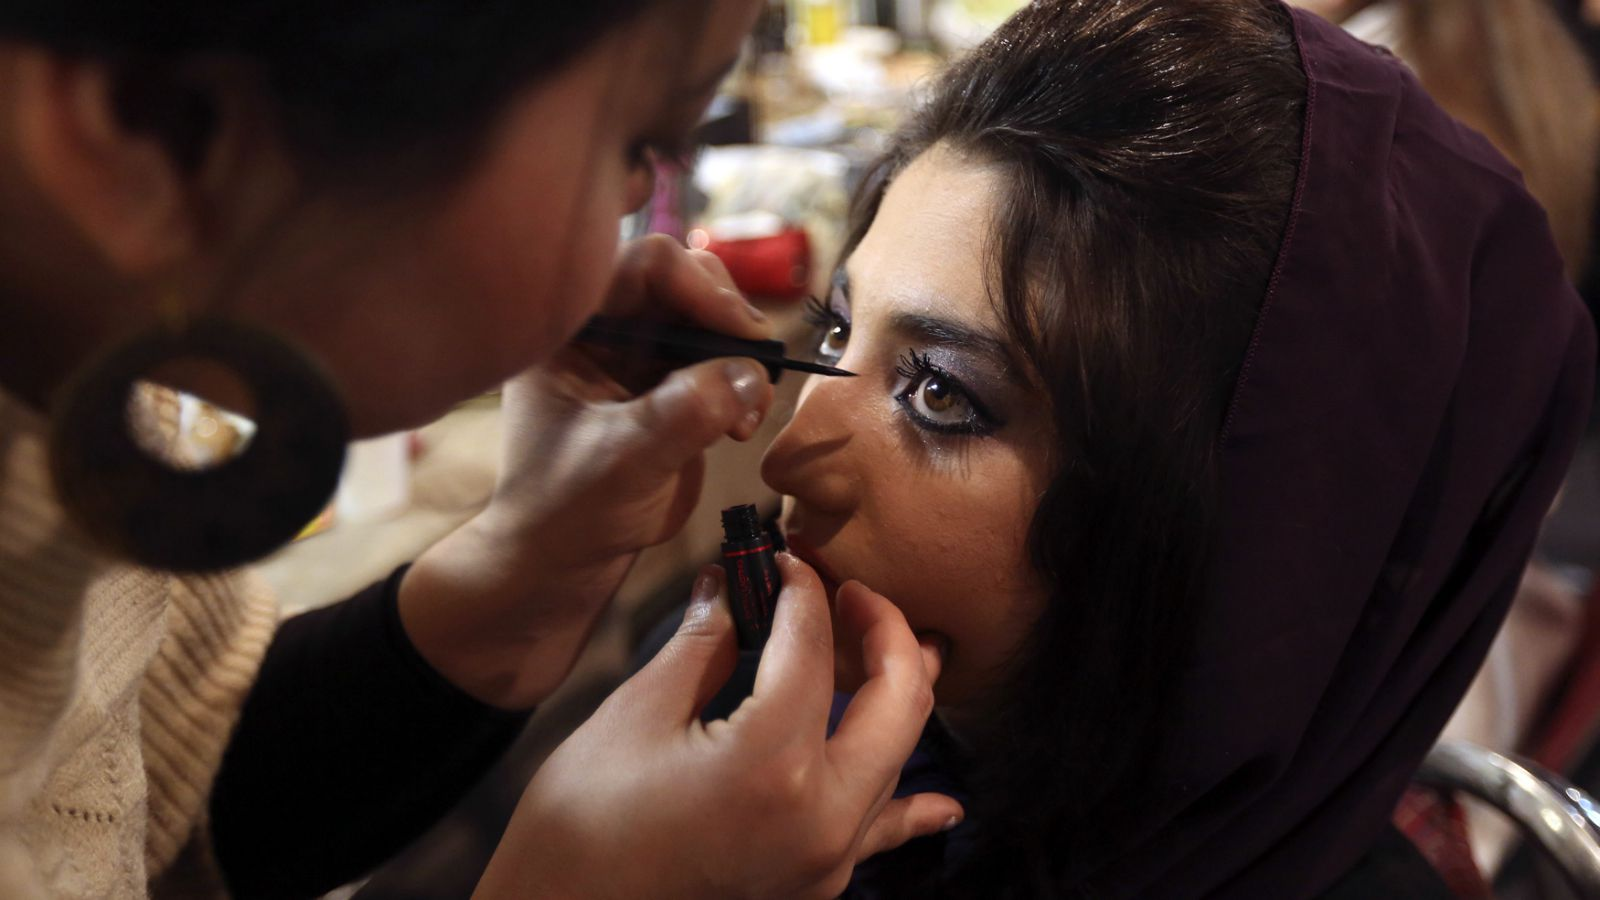 """Afghan's Latifa Azizi has her make up done before performing in the """"Afghan star"""" talent show in Kabul January 23, 2013. Azizi and her family fled Mazar for the Afghan capital, Kabul, soon after she appeared on the show in November. Her community was angry with her appearance, saying it was un-Islamic for a woman to sing and appear on television. The family began to receive death threats. Picture taken on January 23."""